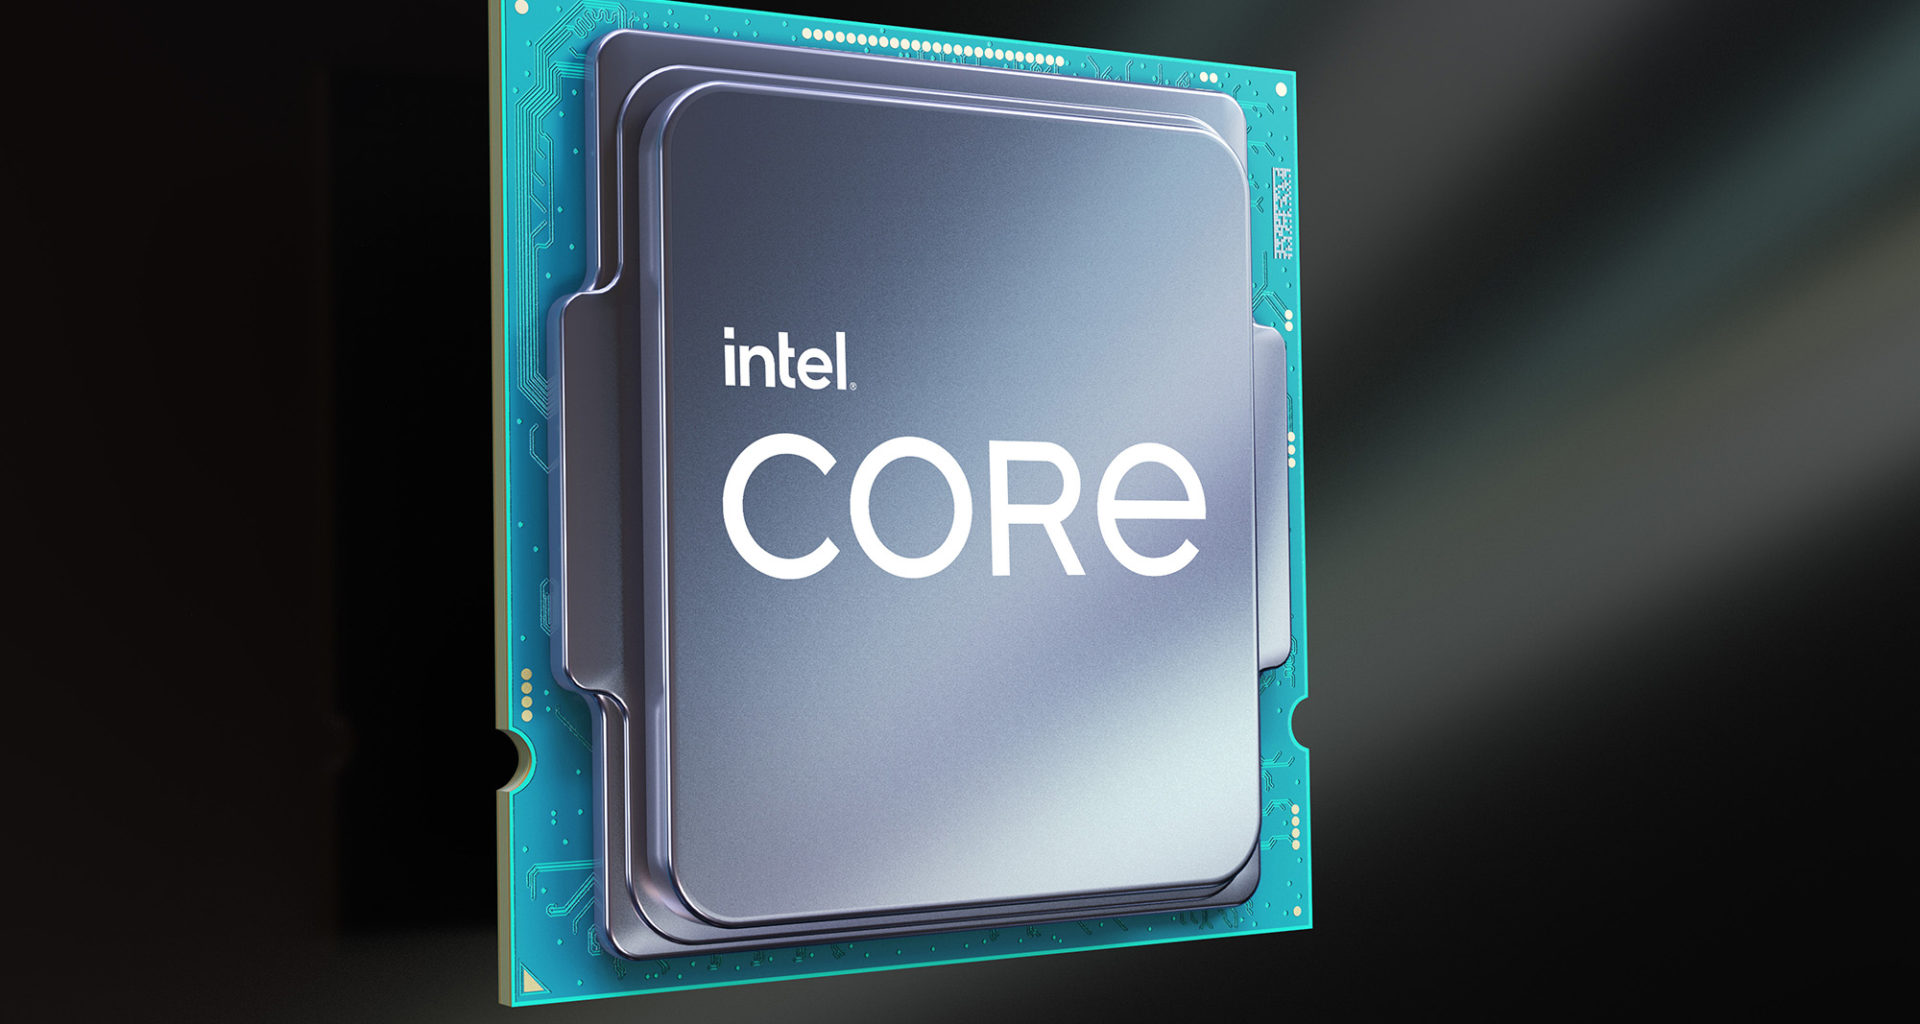 Intel might launch its 11th generation Rocket Lake S processors on 15th March 2021